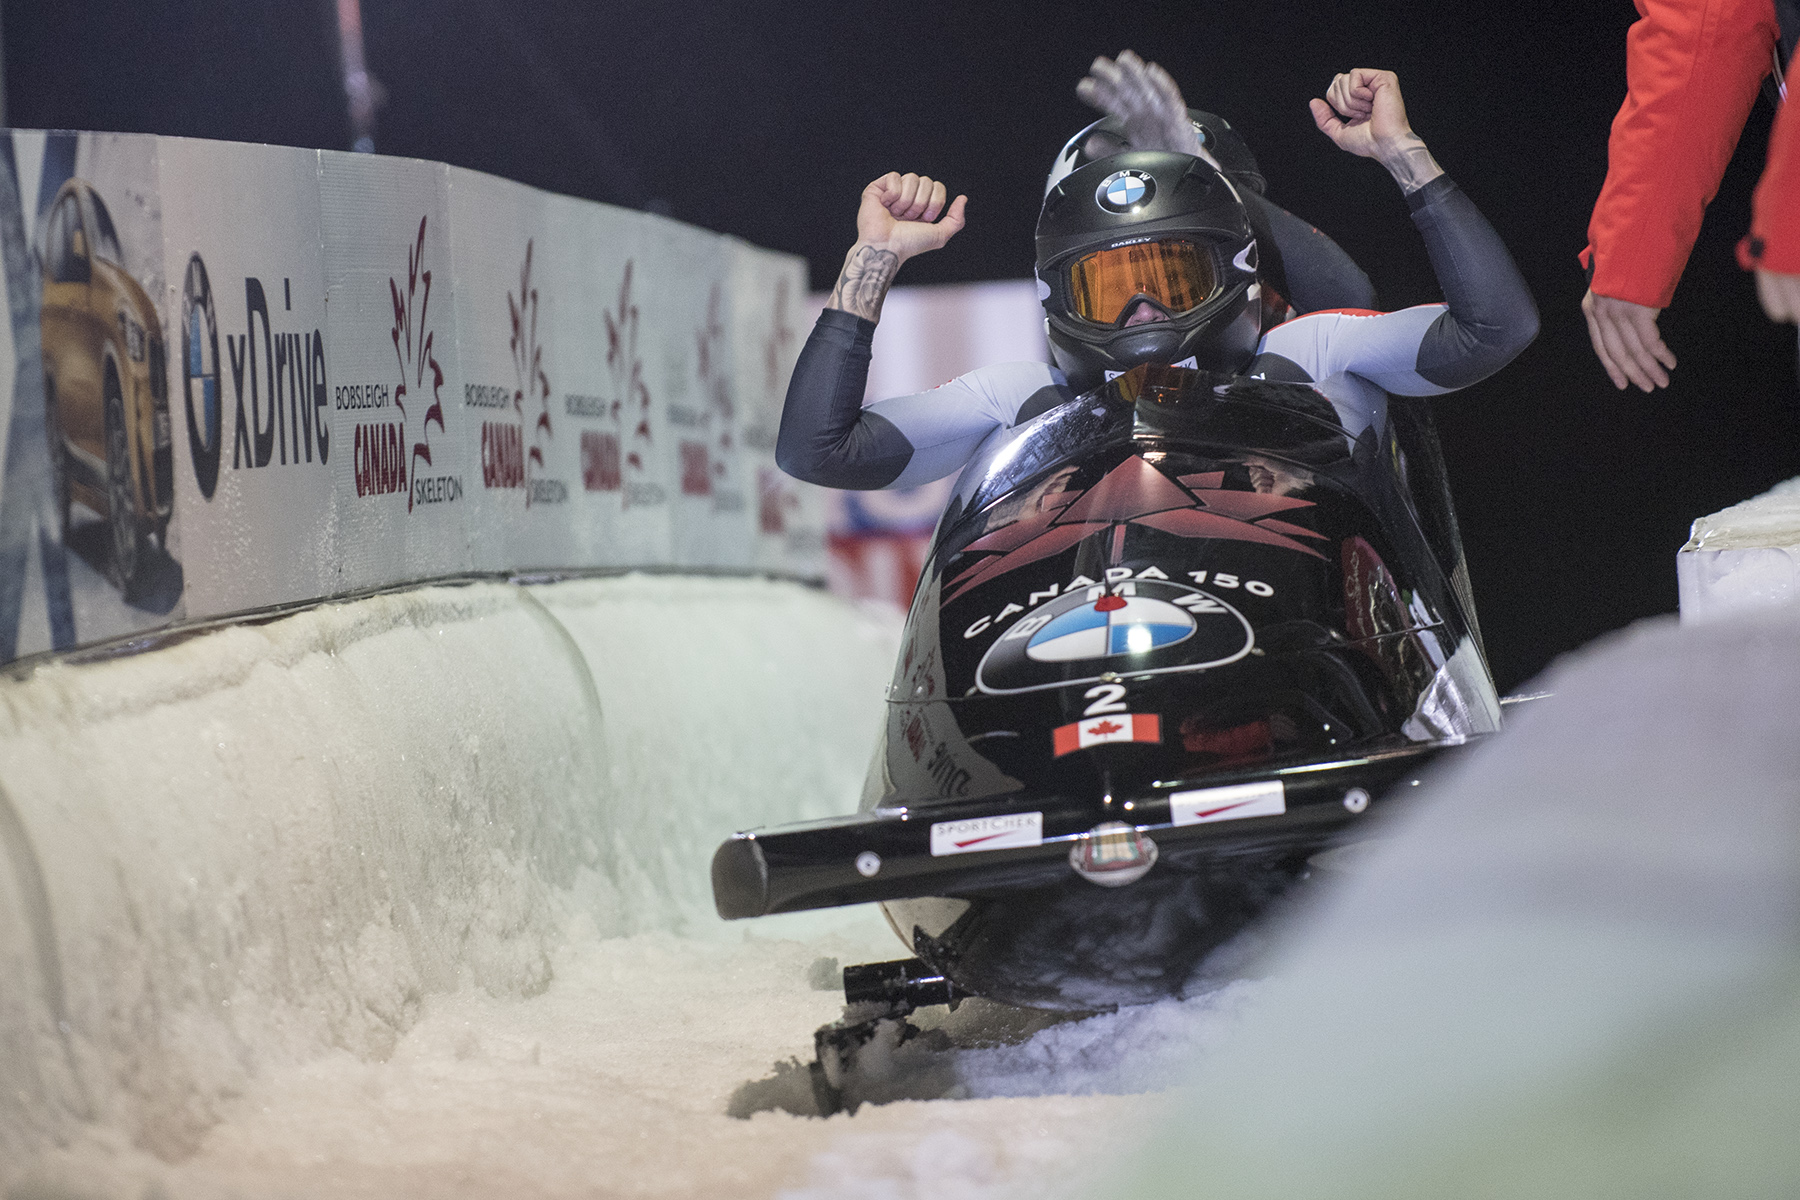 Team Canada - Kaillie Humphries and Melissa Lothloz finish their run at the Whistler Sliding Centre